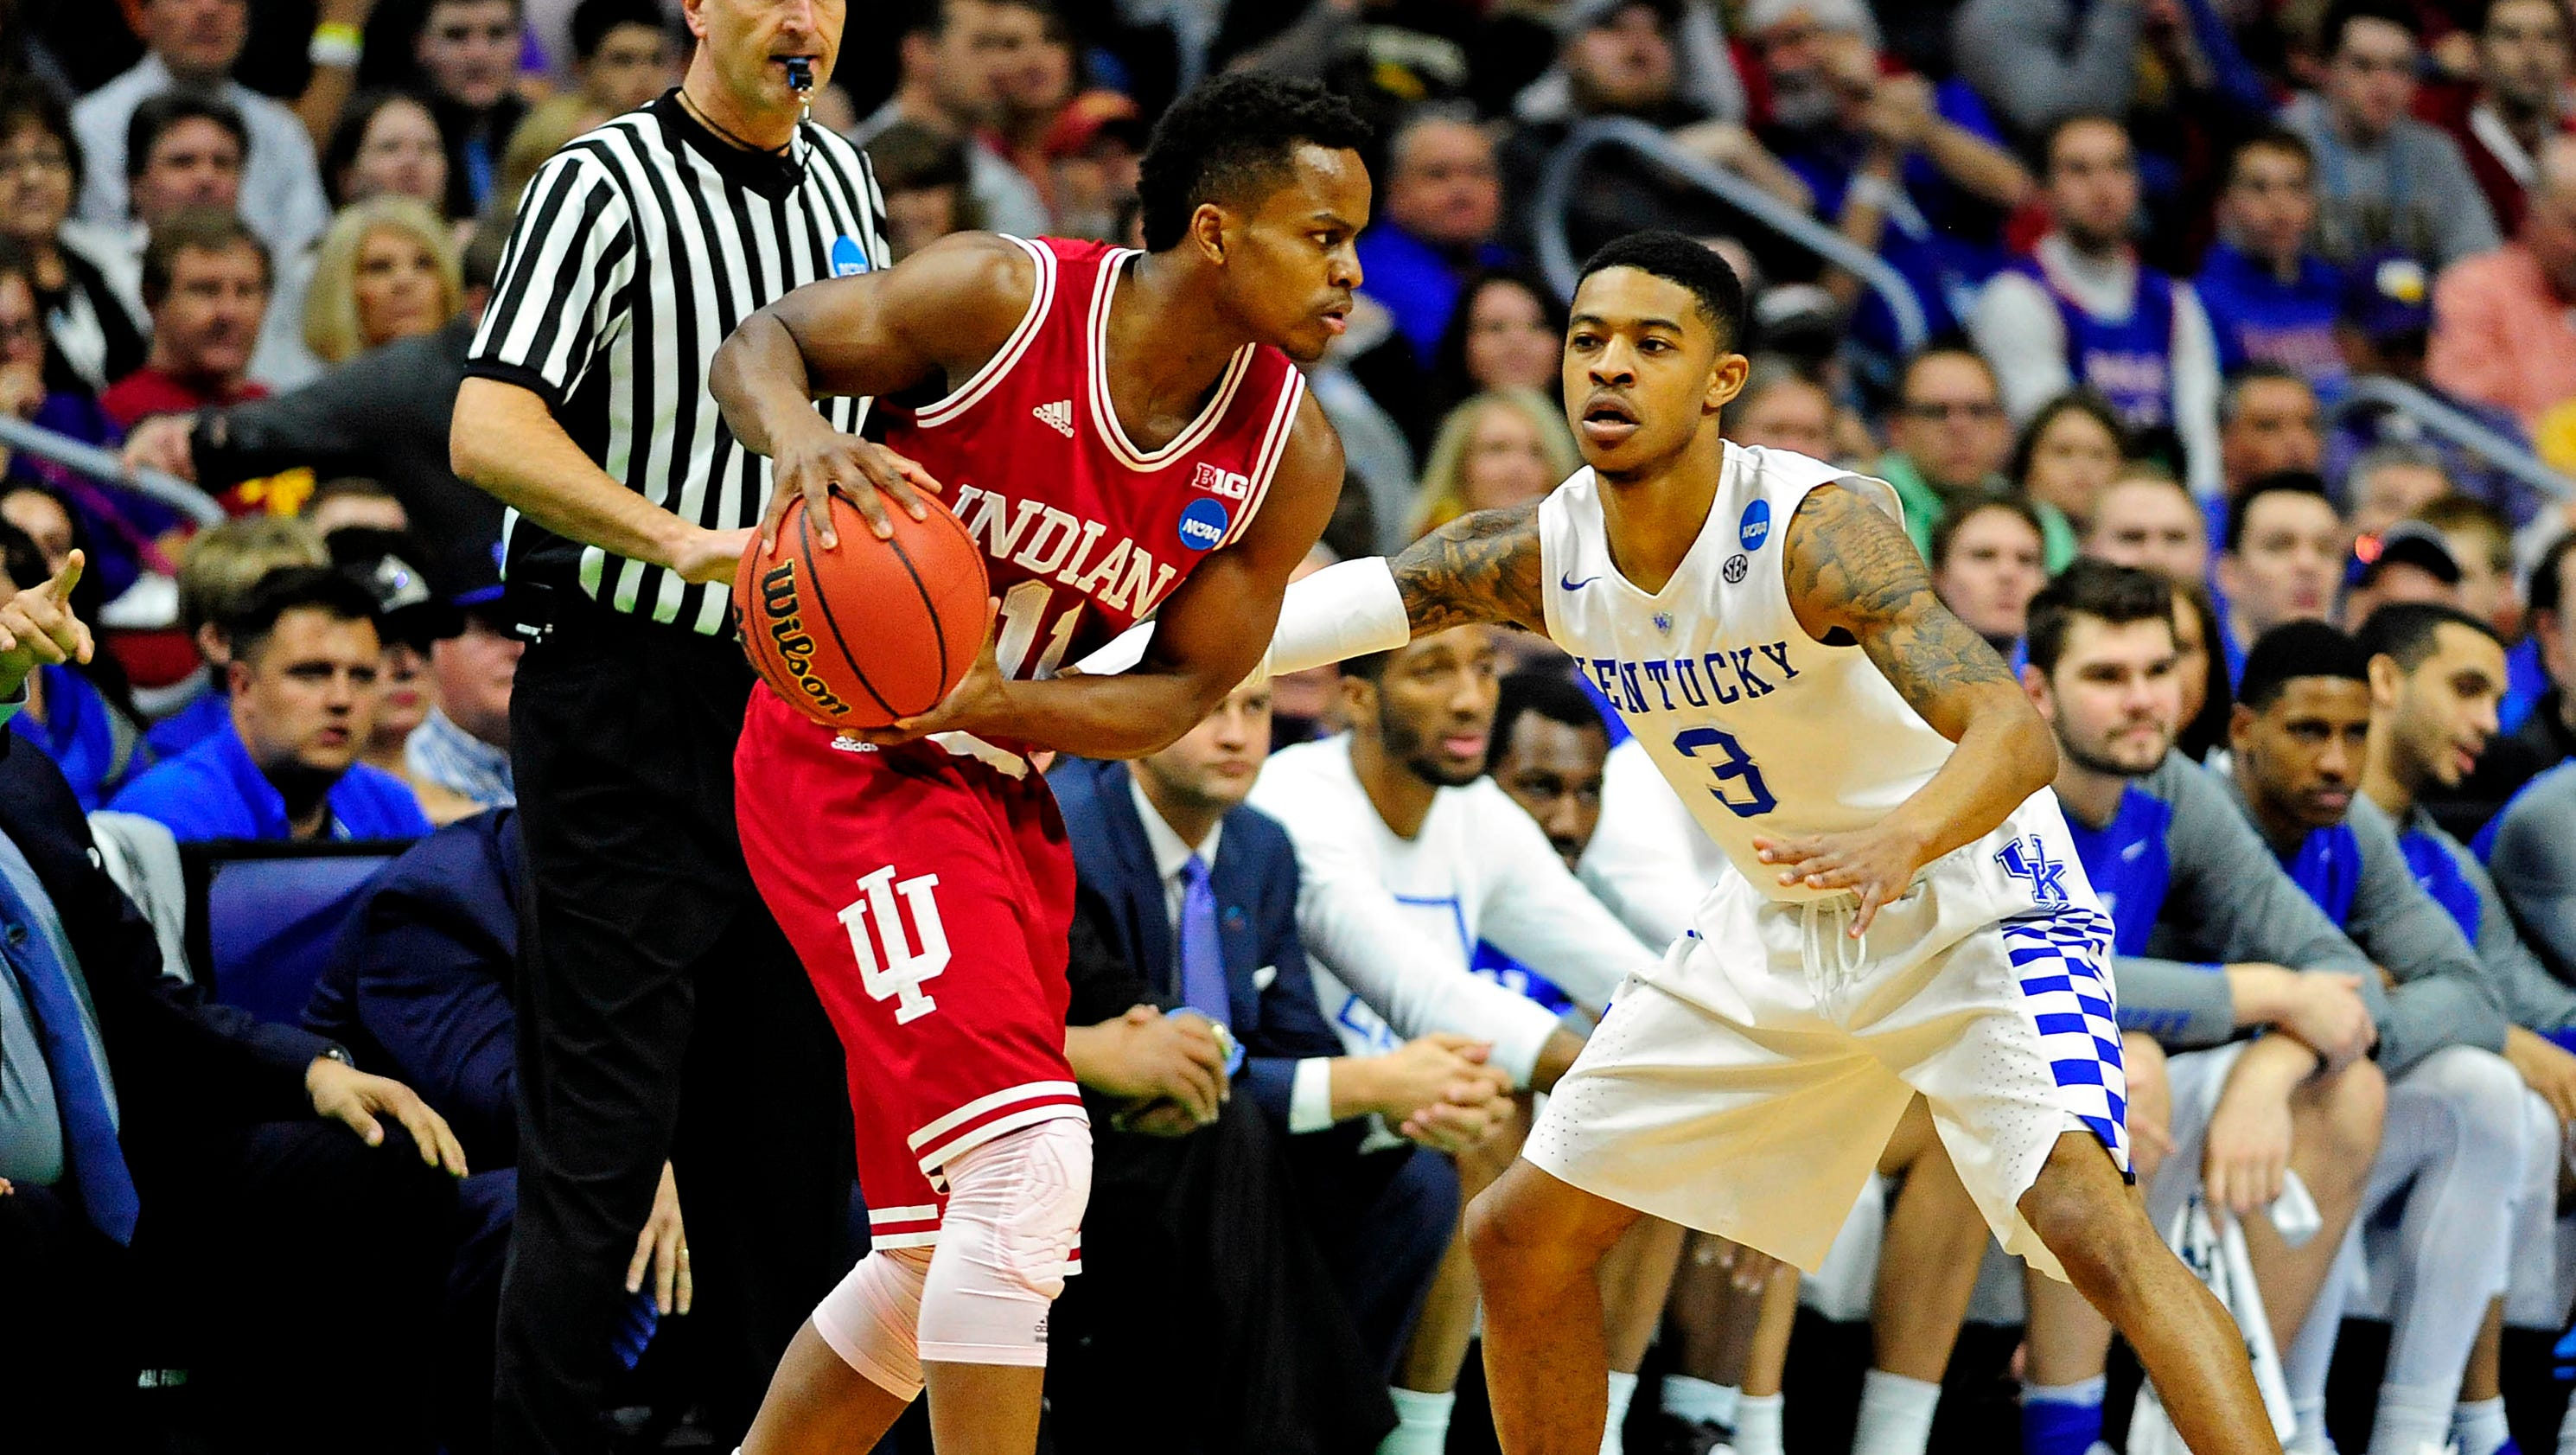 Uk Basketball: Live Updates From The Second-round NCAA